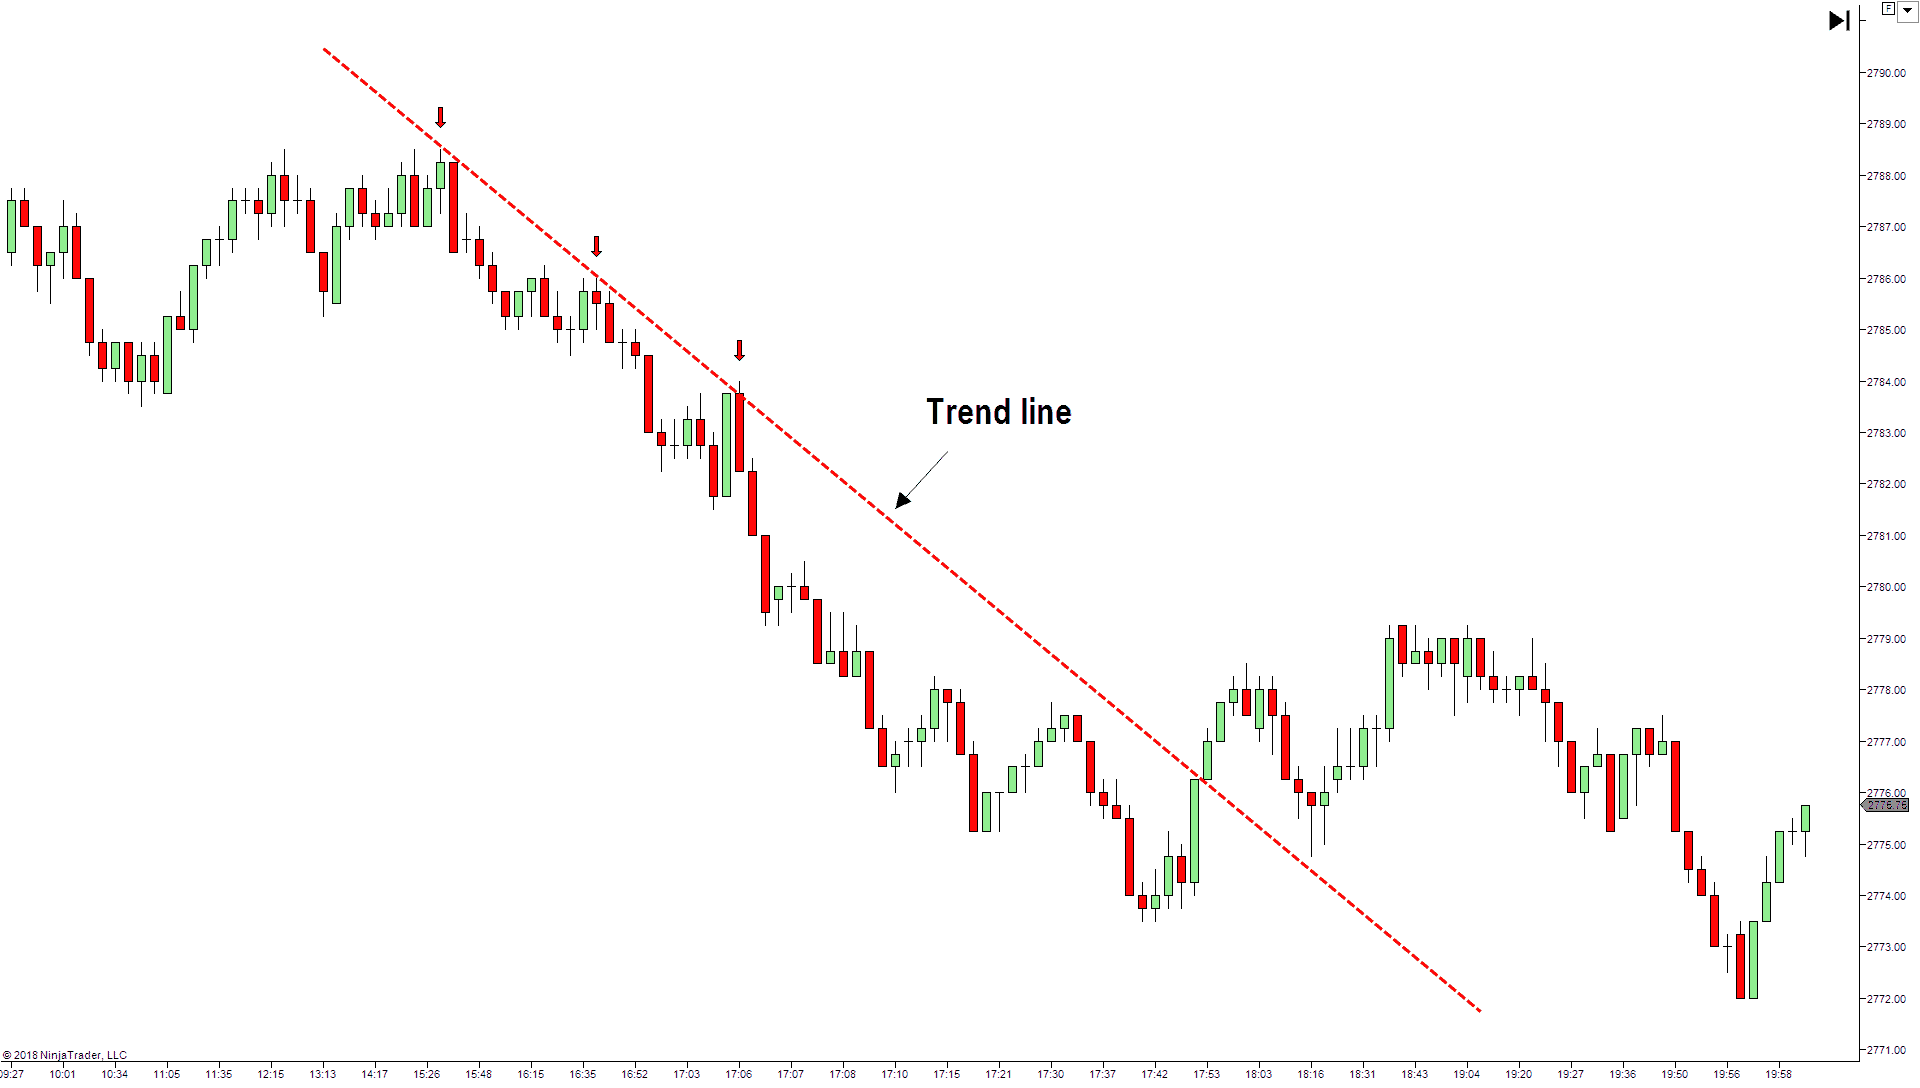 How to draw trend channel correctly